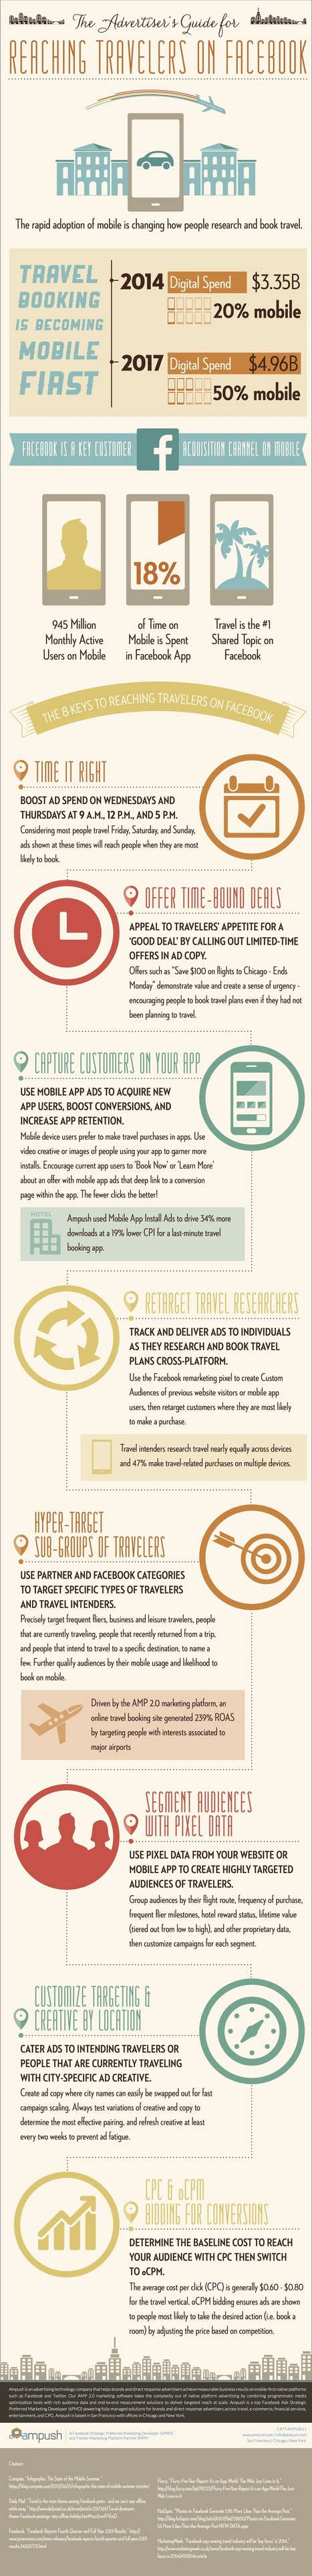 #INFOGRAPHIC  Reaching Travelers on Facebook | Web Marketing Turistico | Scoop.it